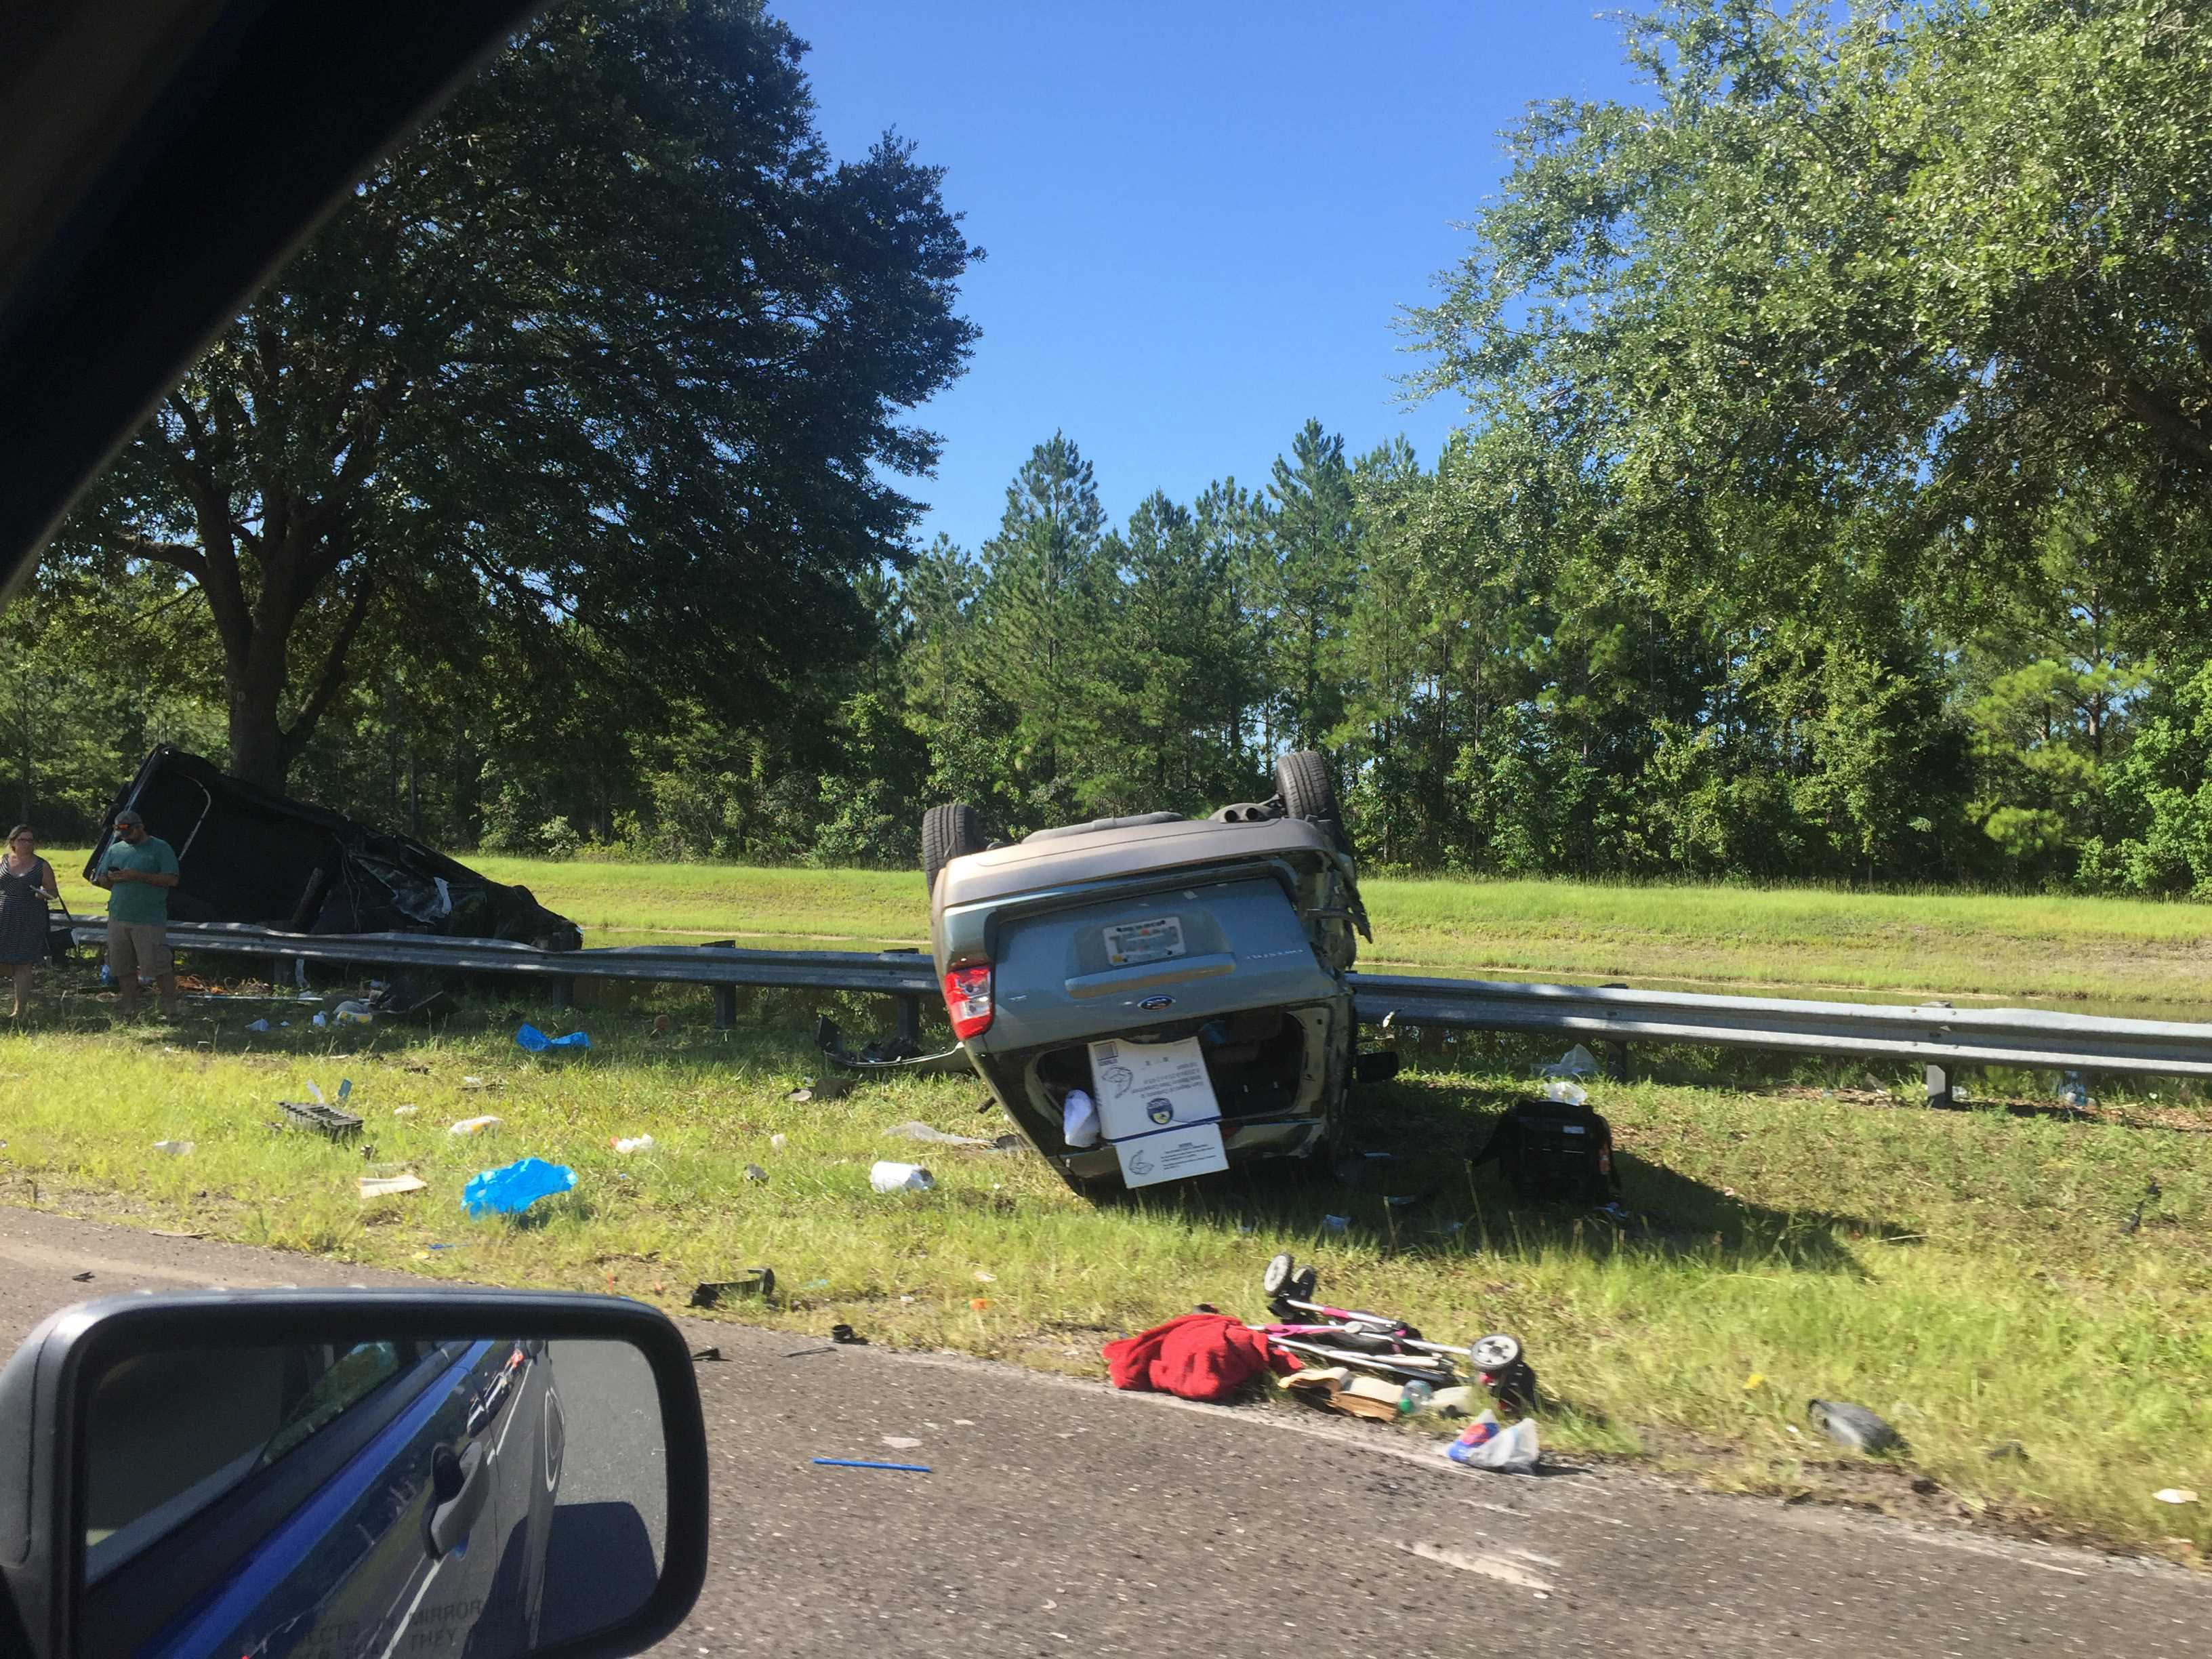 The accident at JTB has reported injuries, according to JTB. Photo by Tiffany Salameh